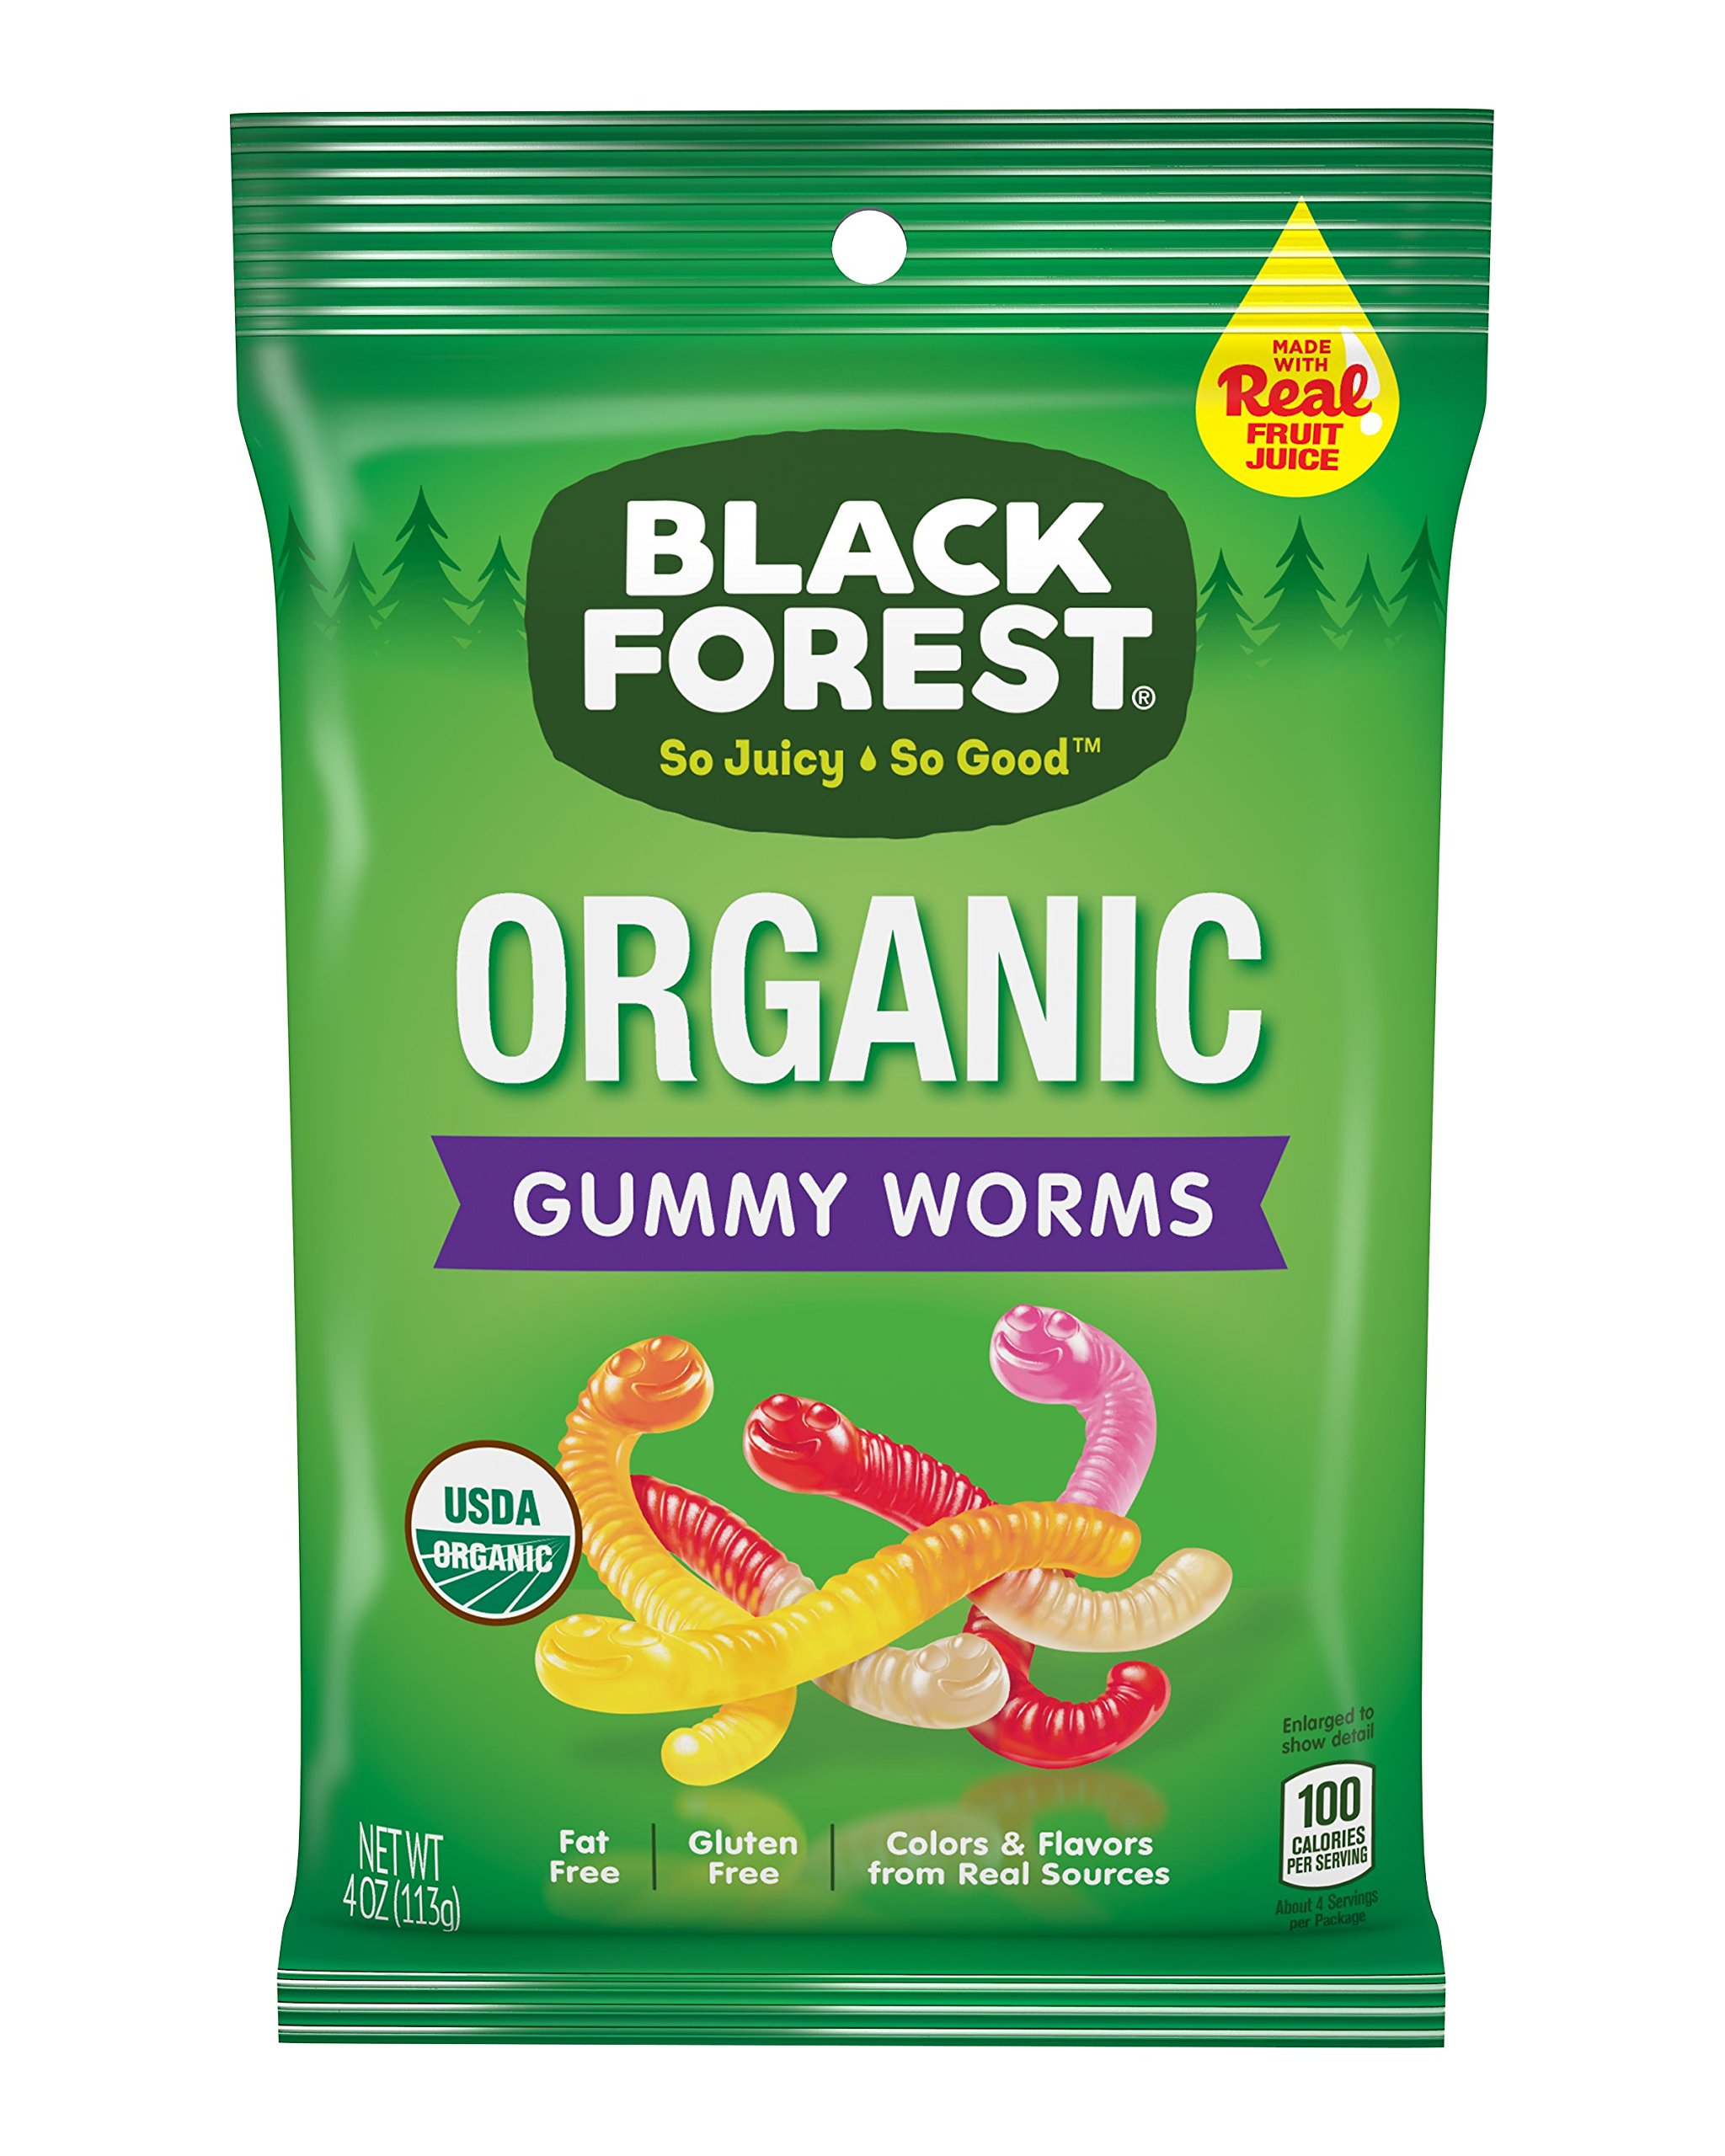 Black Forest Organic Gummy Worms Candy, 4 Ounce Bag, Pack of 12